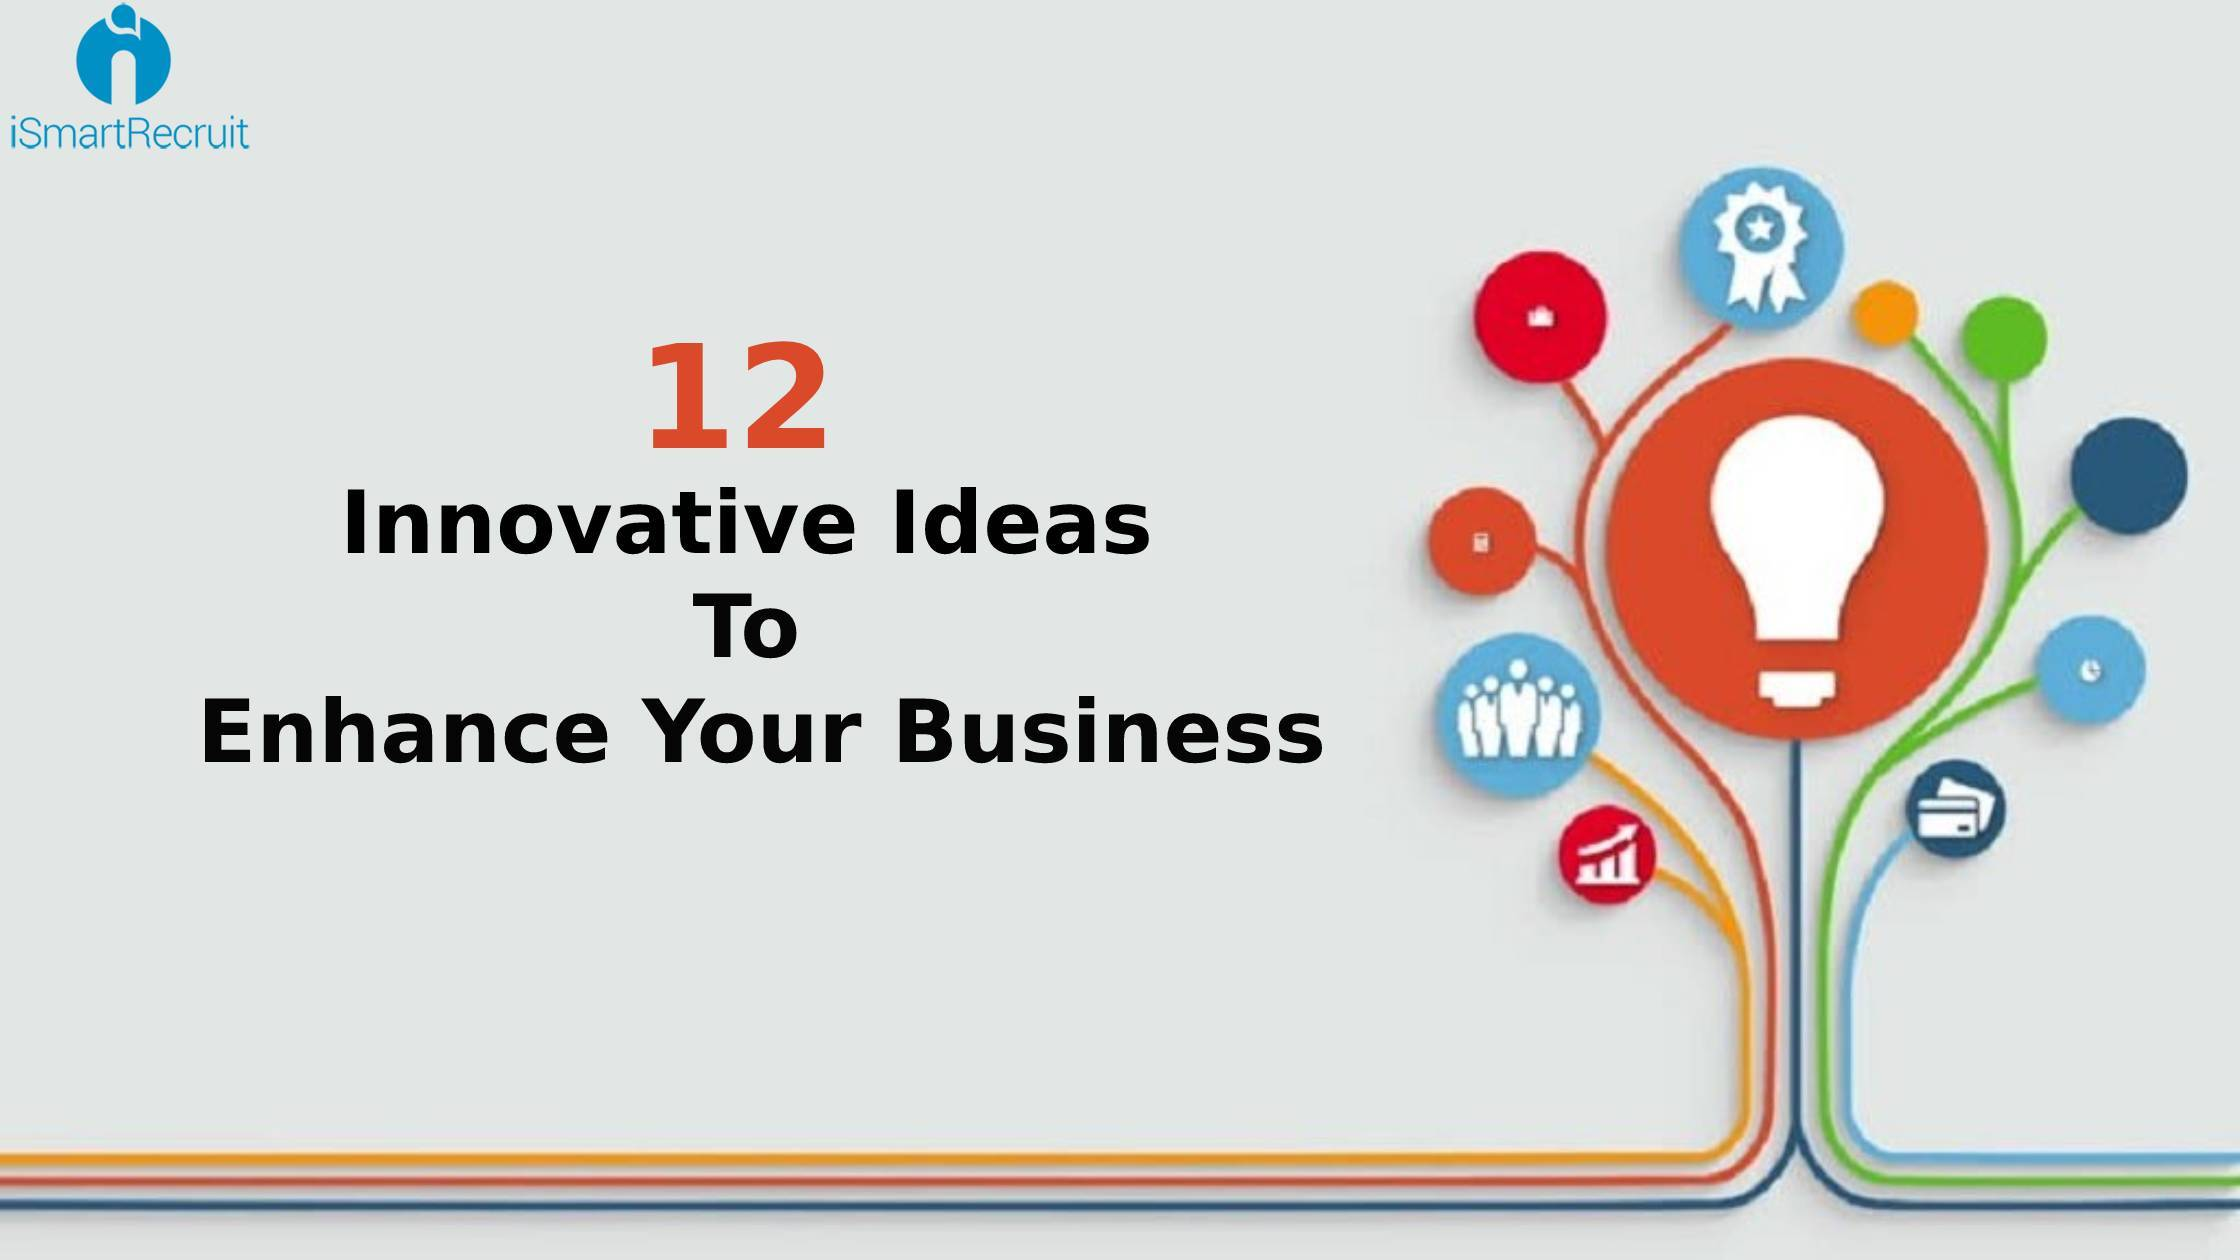 12 Innovative Ideas To Enhance Your Business